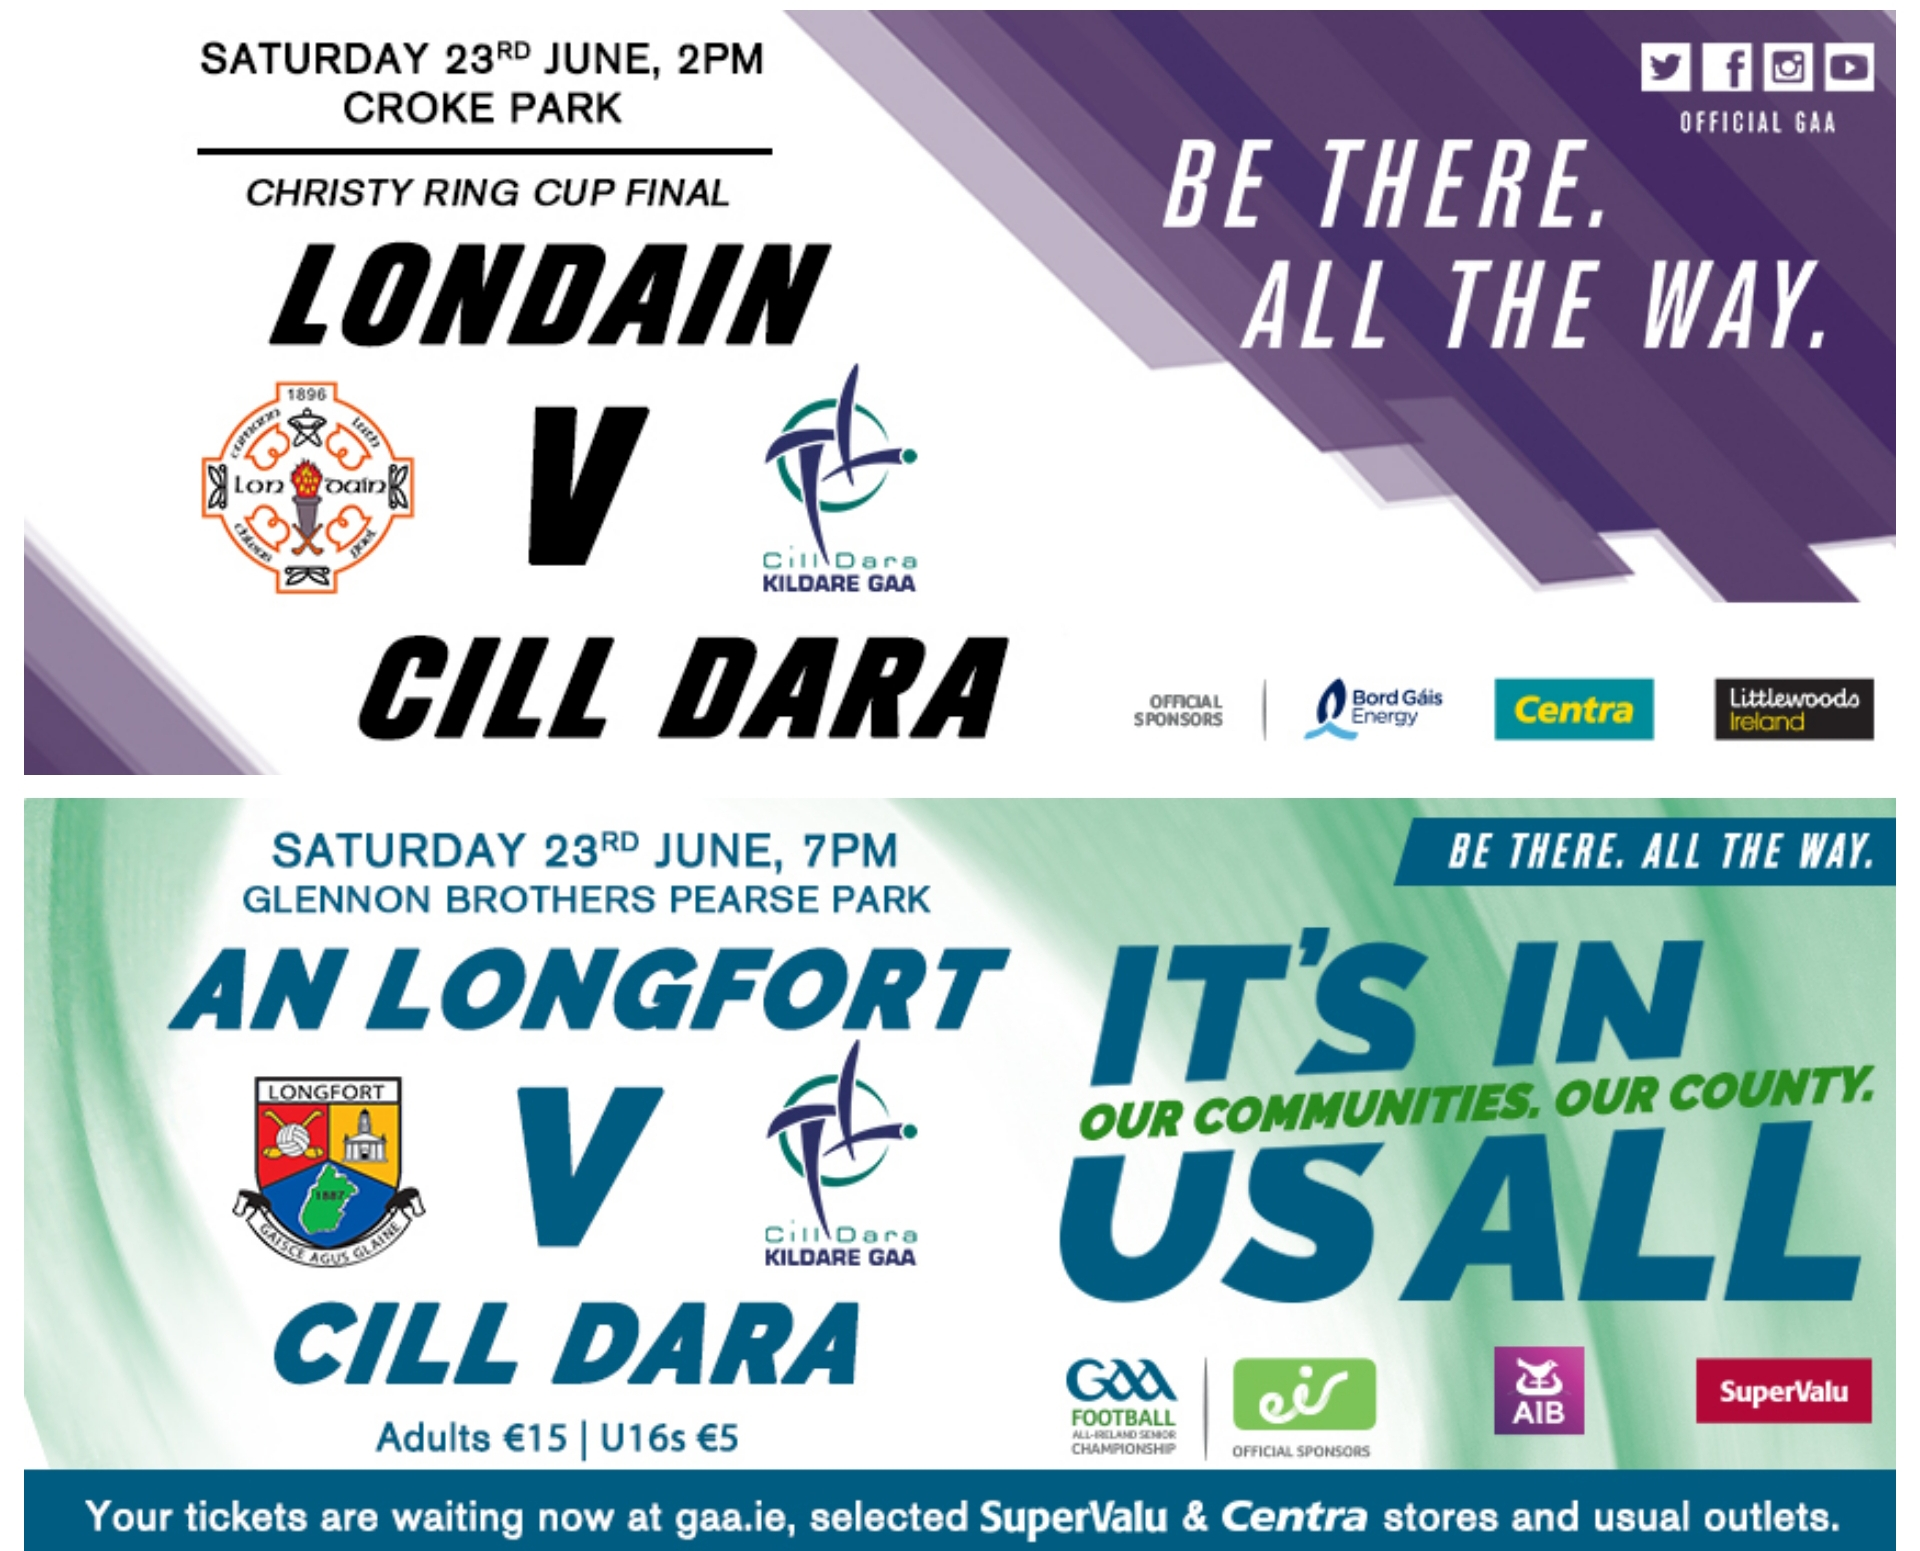 Kildare GAA Ticket Information